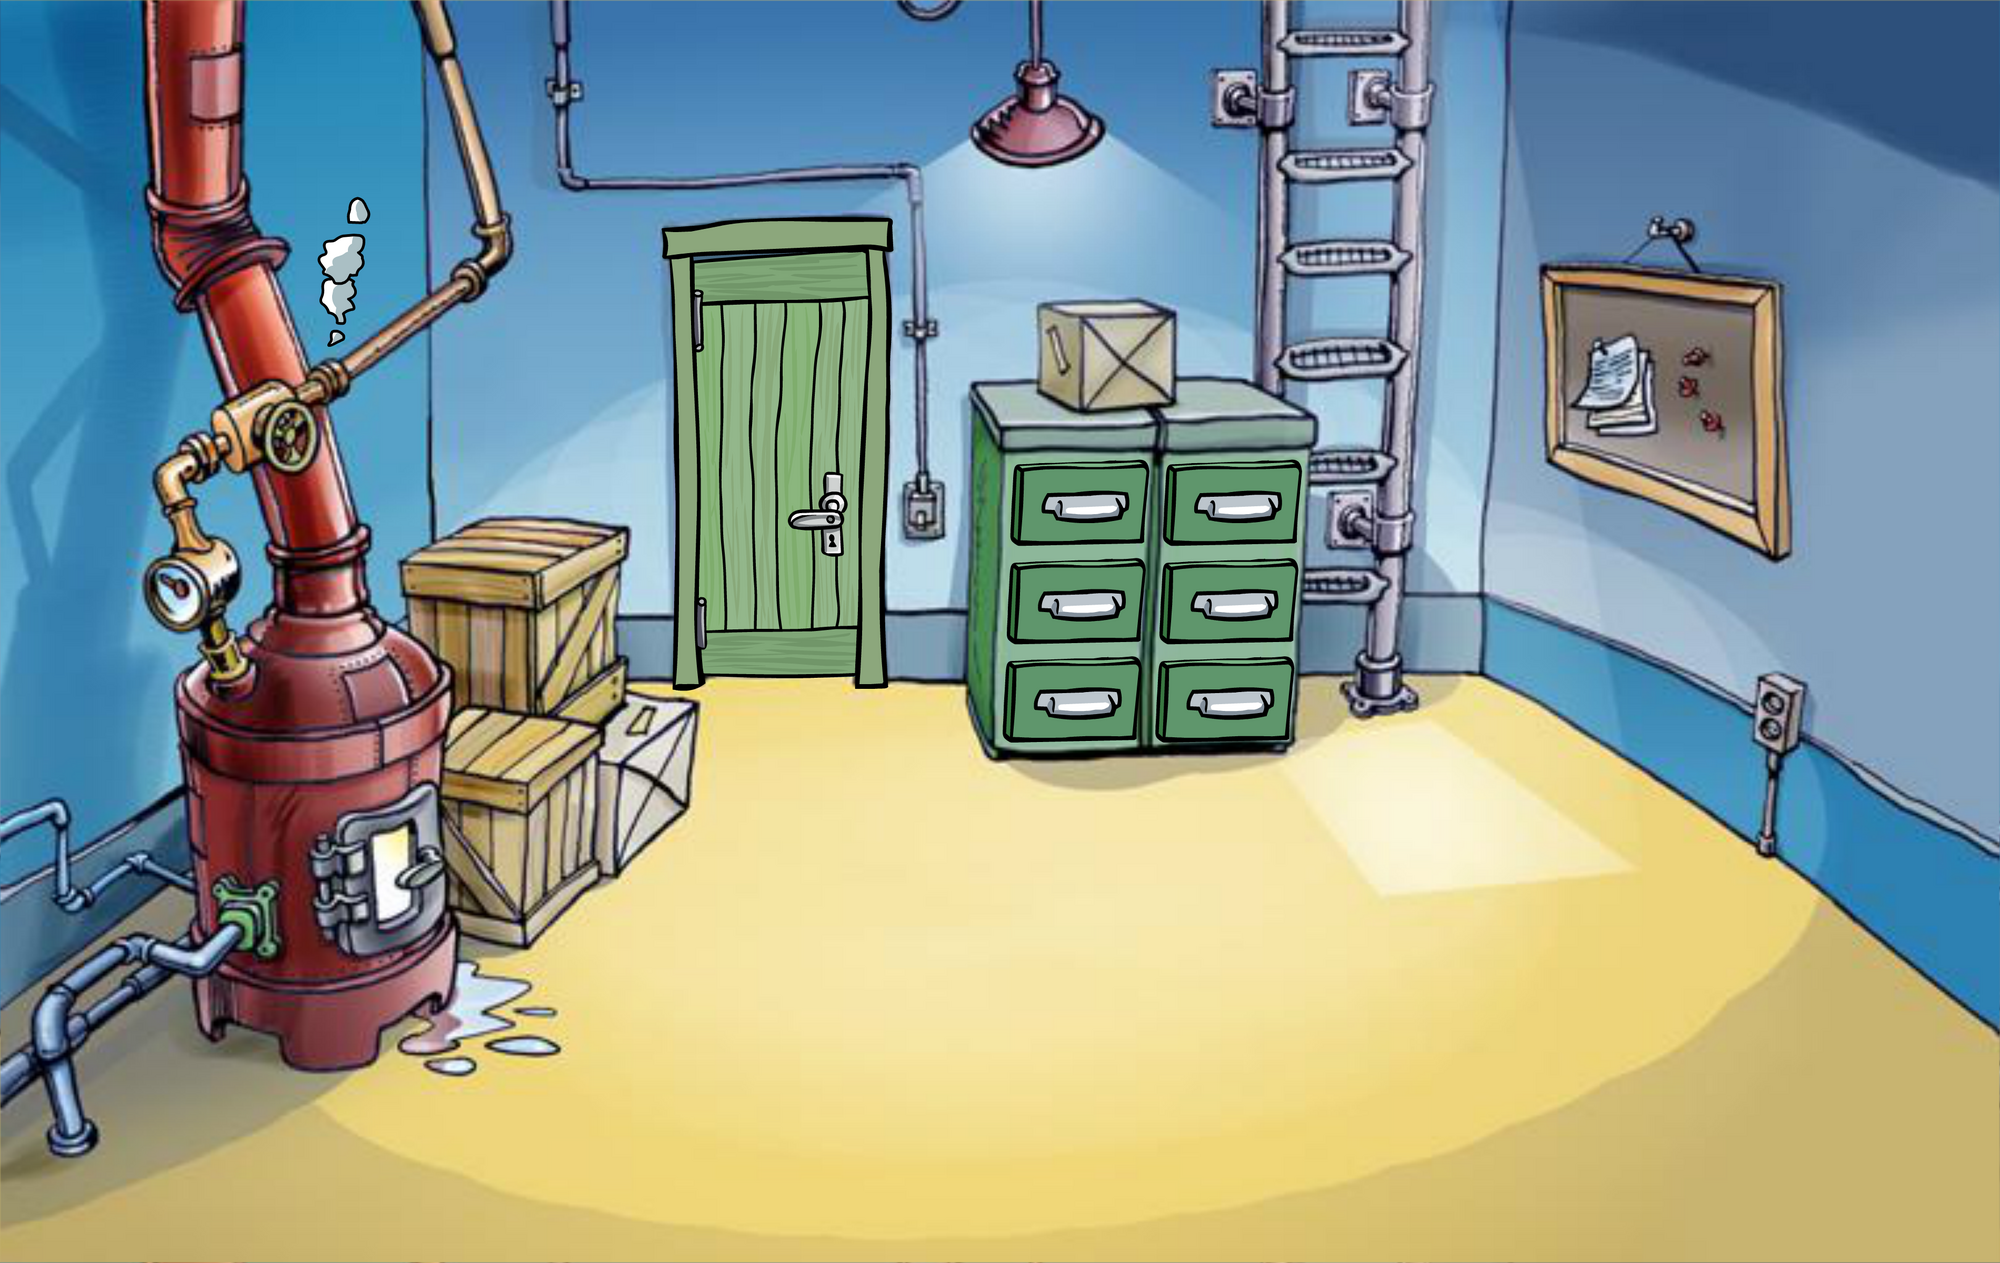 2000?cb=20150731235502 boiler room club penguin wiki fandom powered by wikia how to fix the fuse box in club penguin at suagrazia.org